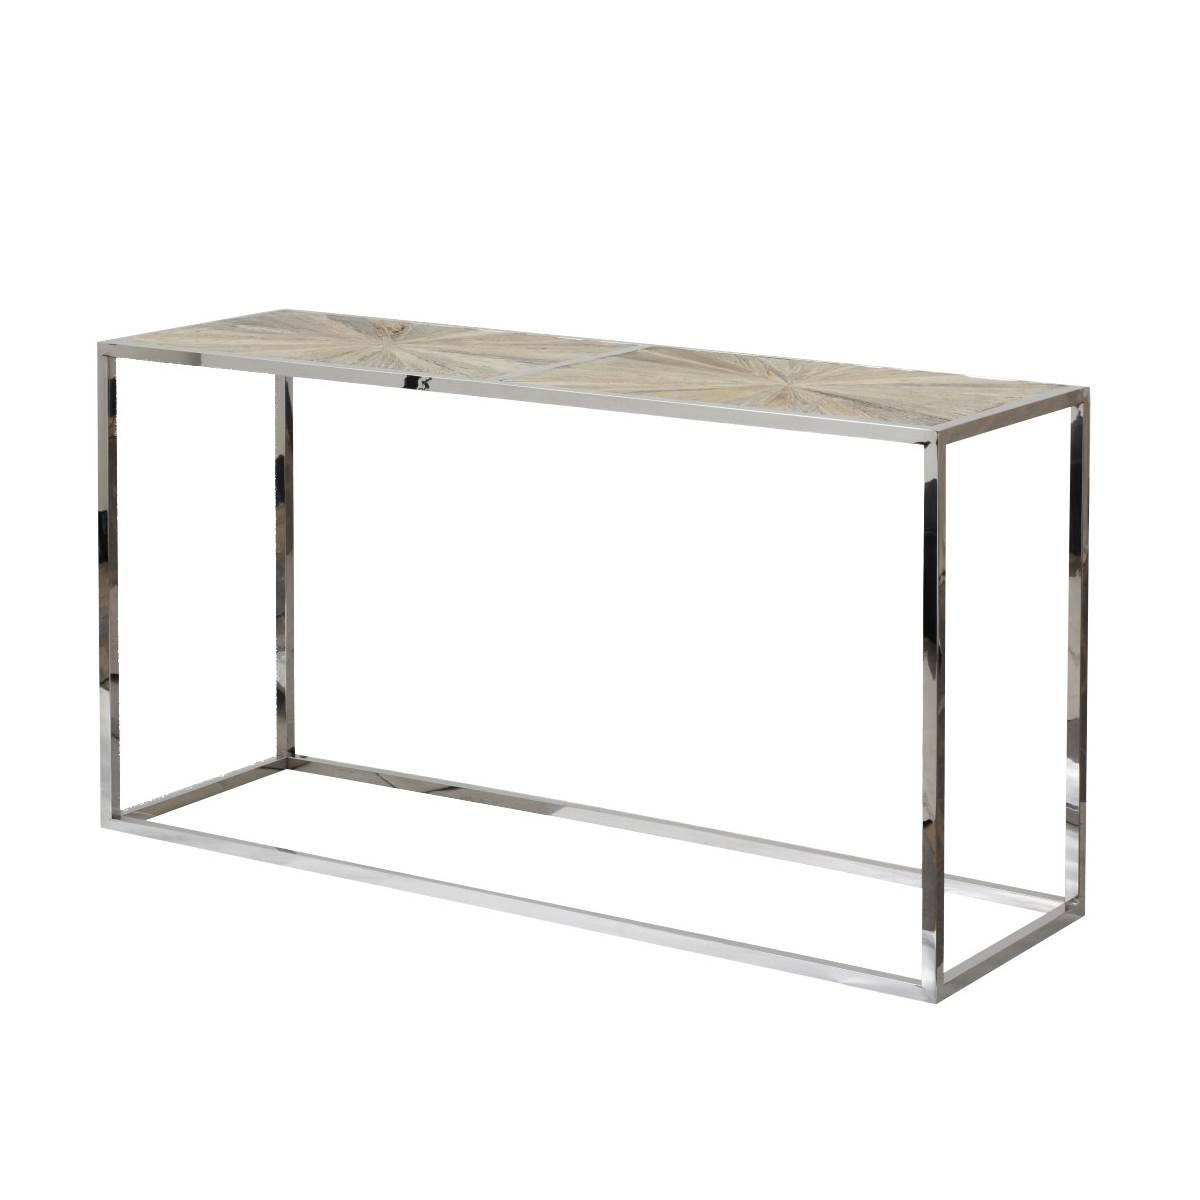 Parquet Console Table | Marshall | Pinterest Intended For Parsons Clear Glass Top & Stainless Steel Base 48X16 Console Tables (Gallery 3 of 20)